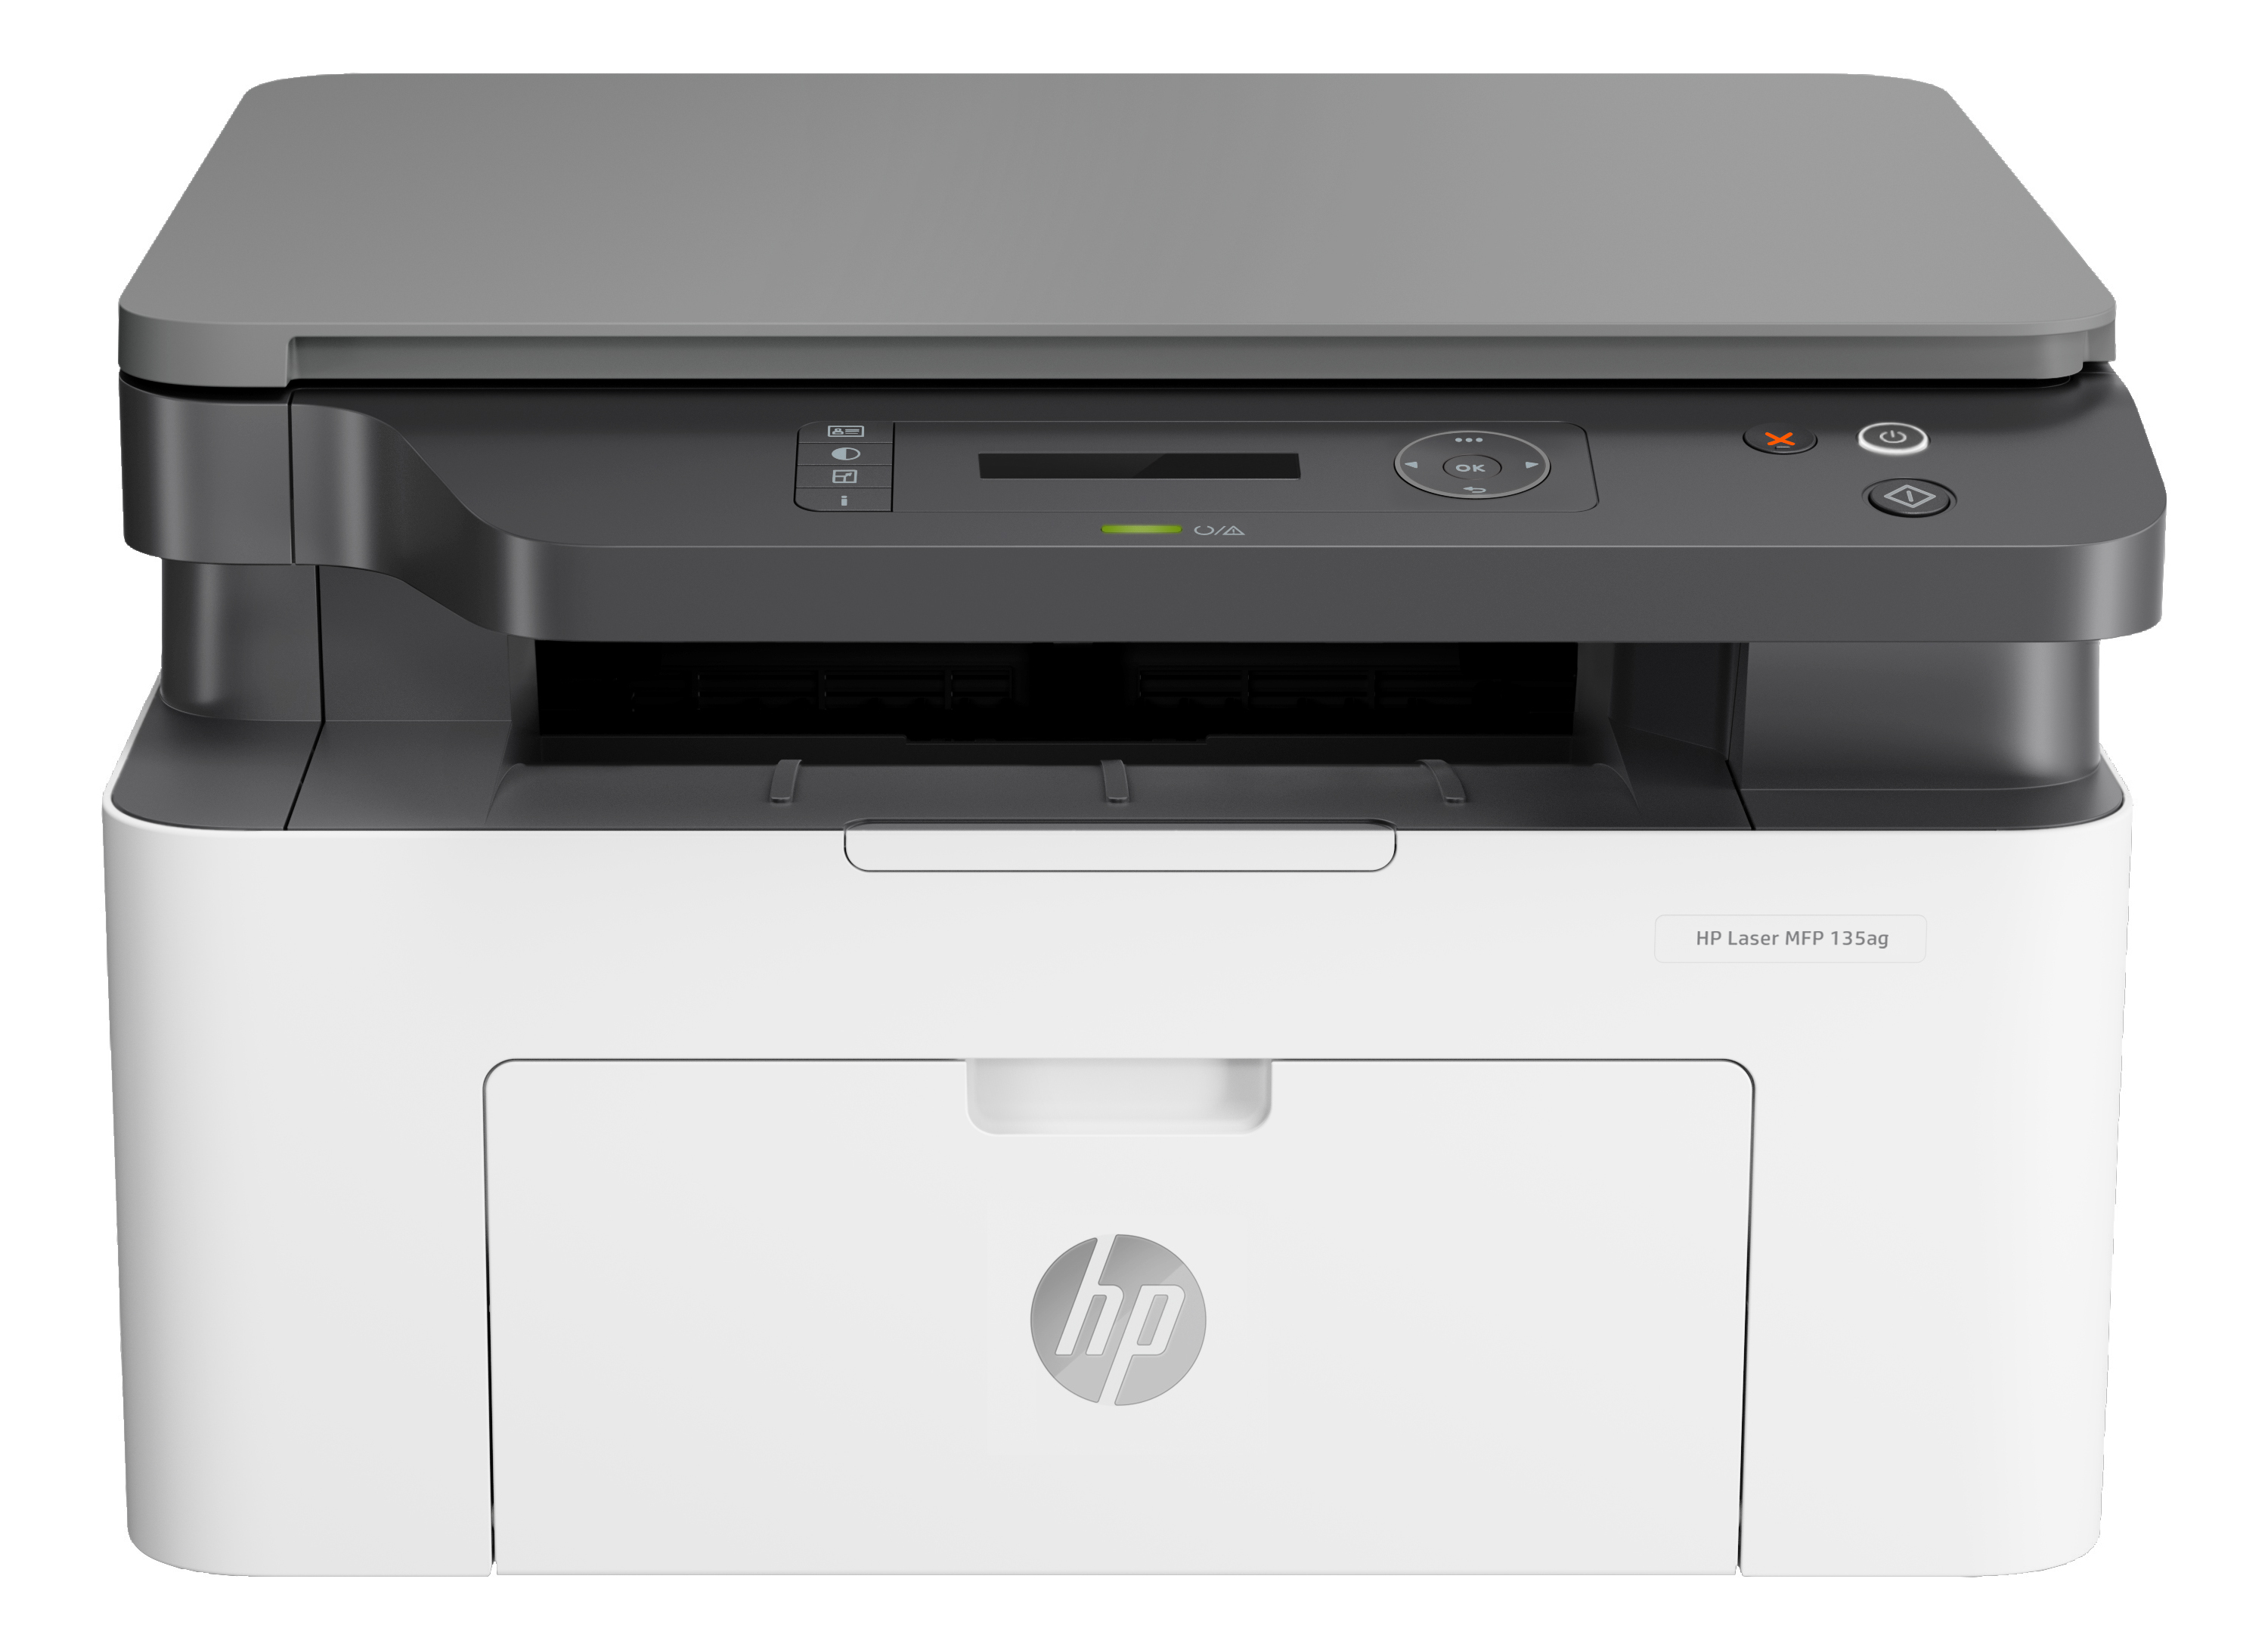 HP Laser MFP 135ag black gray